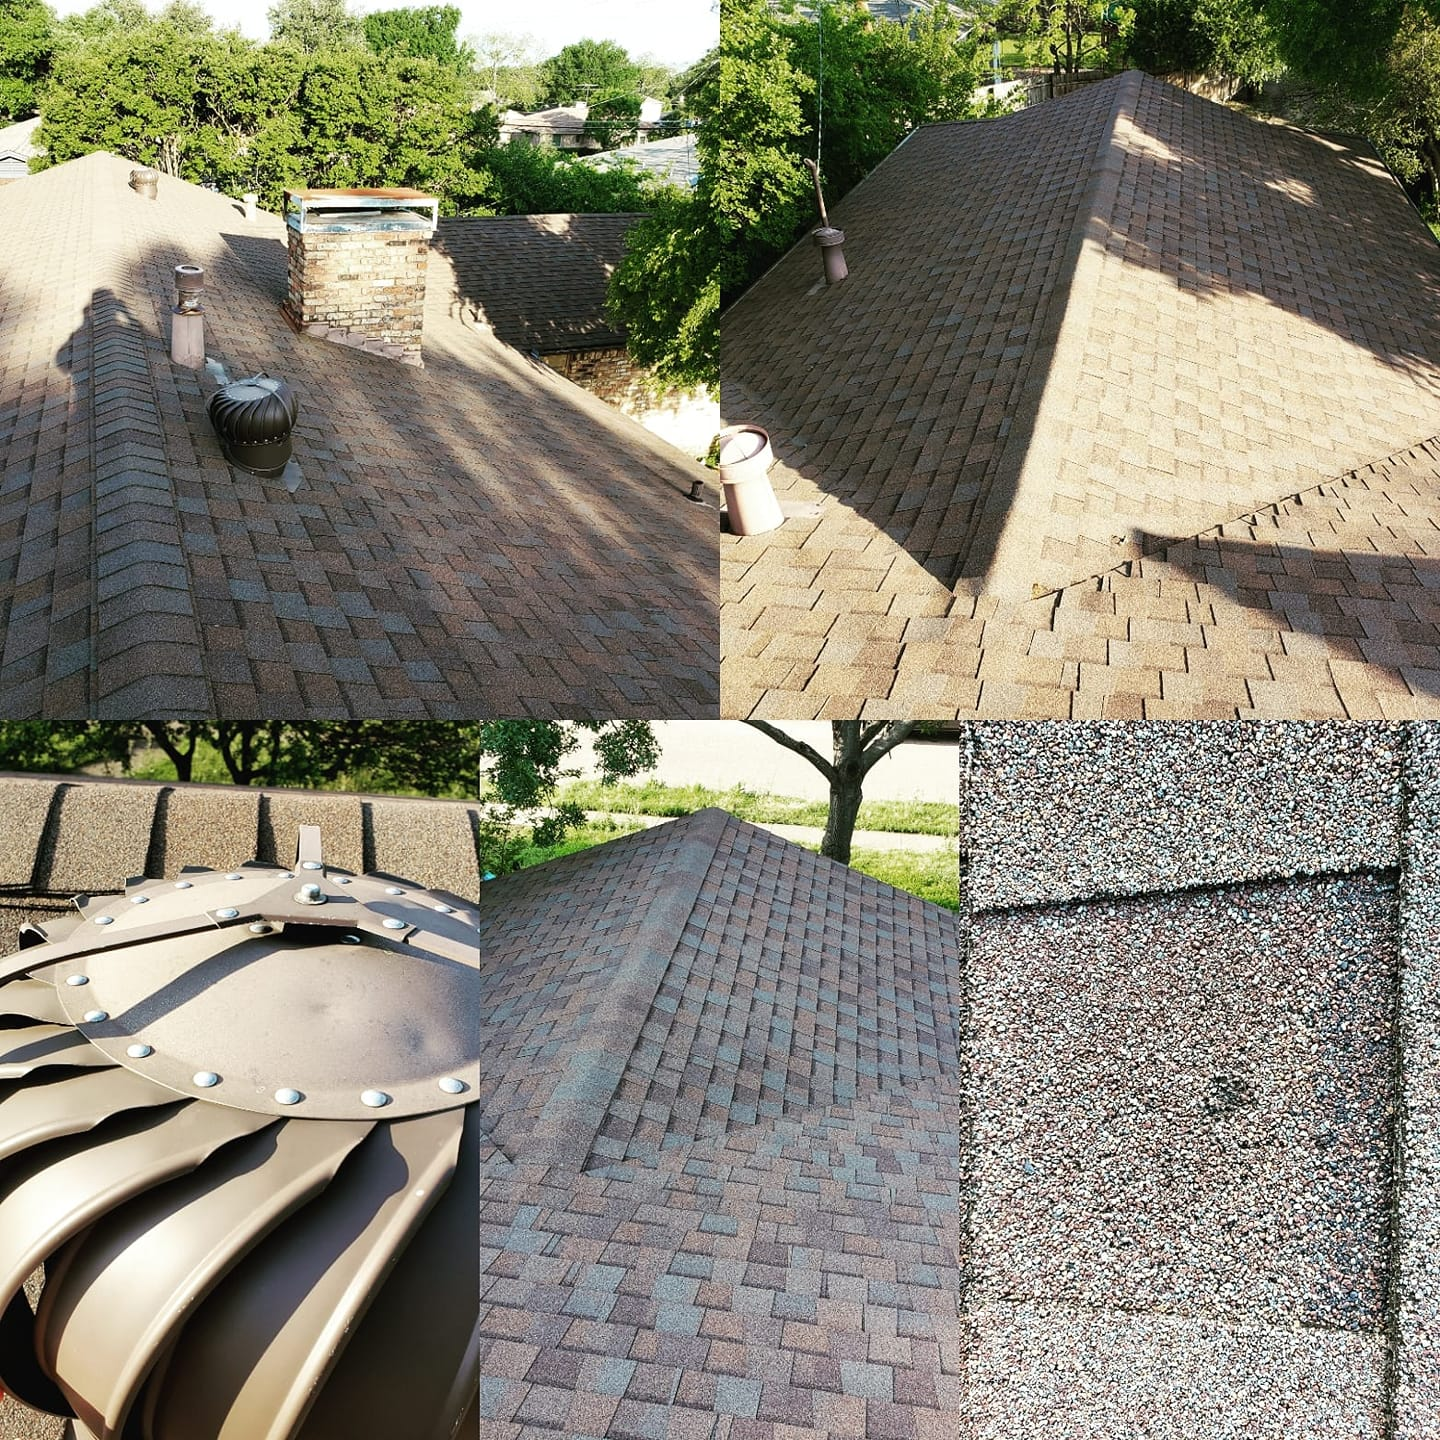 abel solutions llc top tier reroofing services near forney, tx